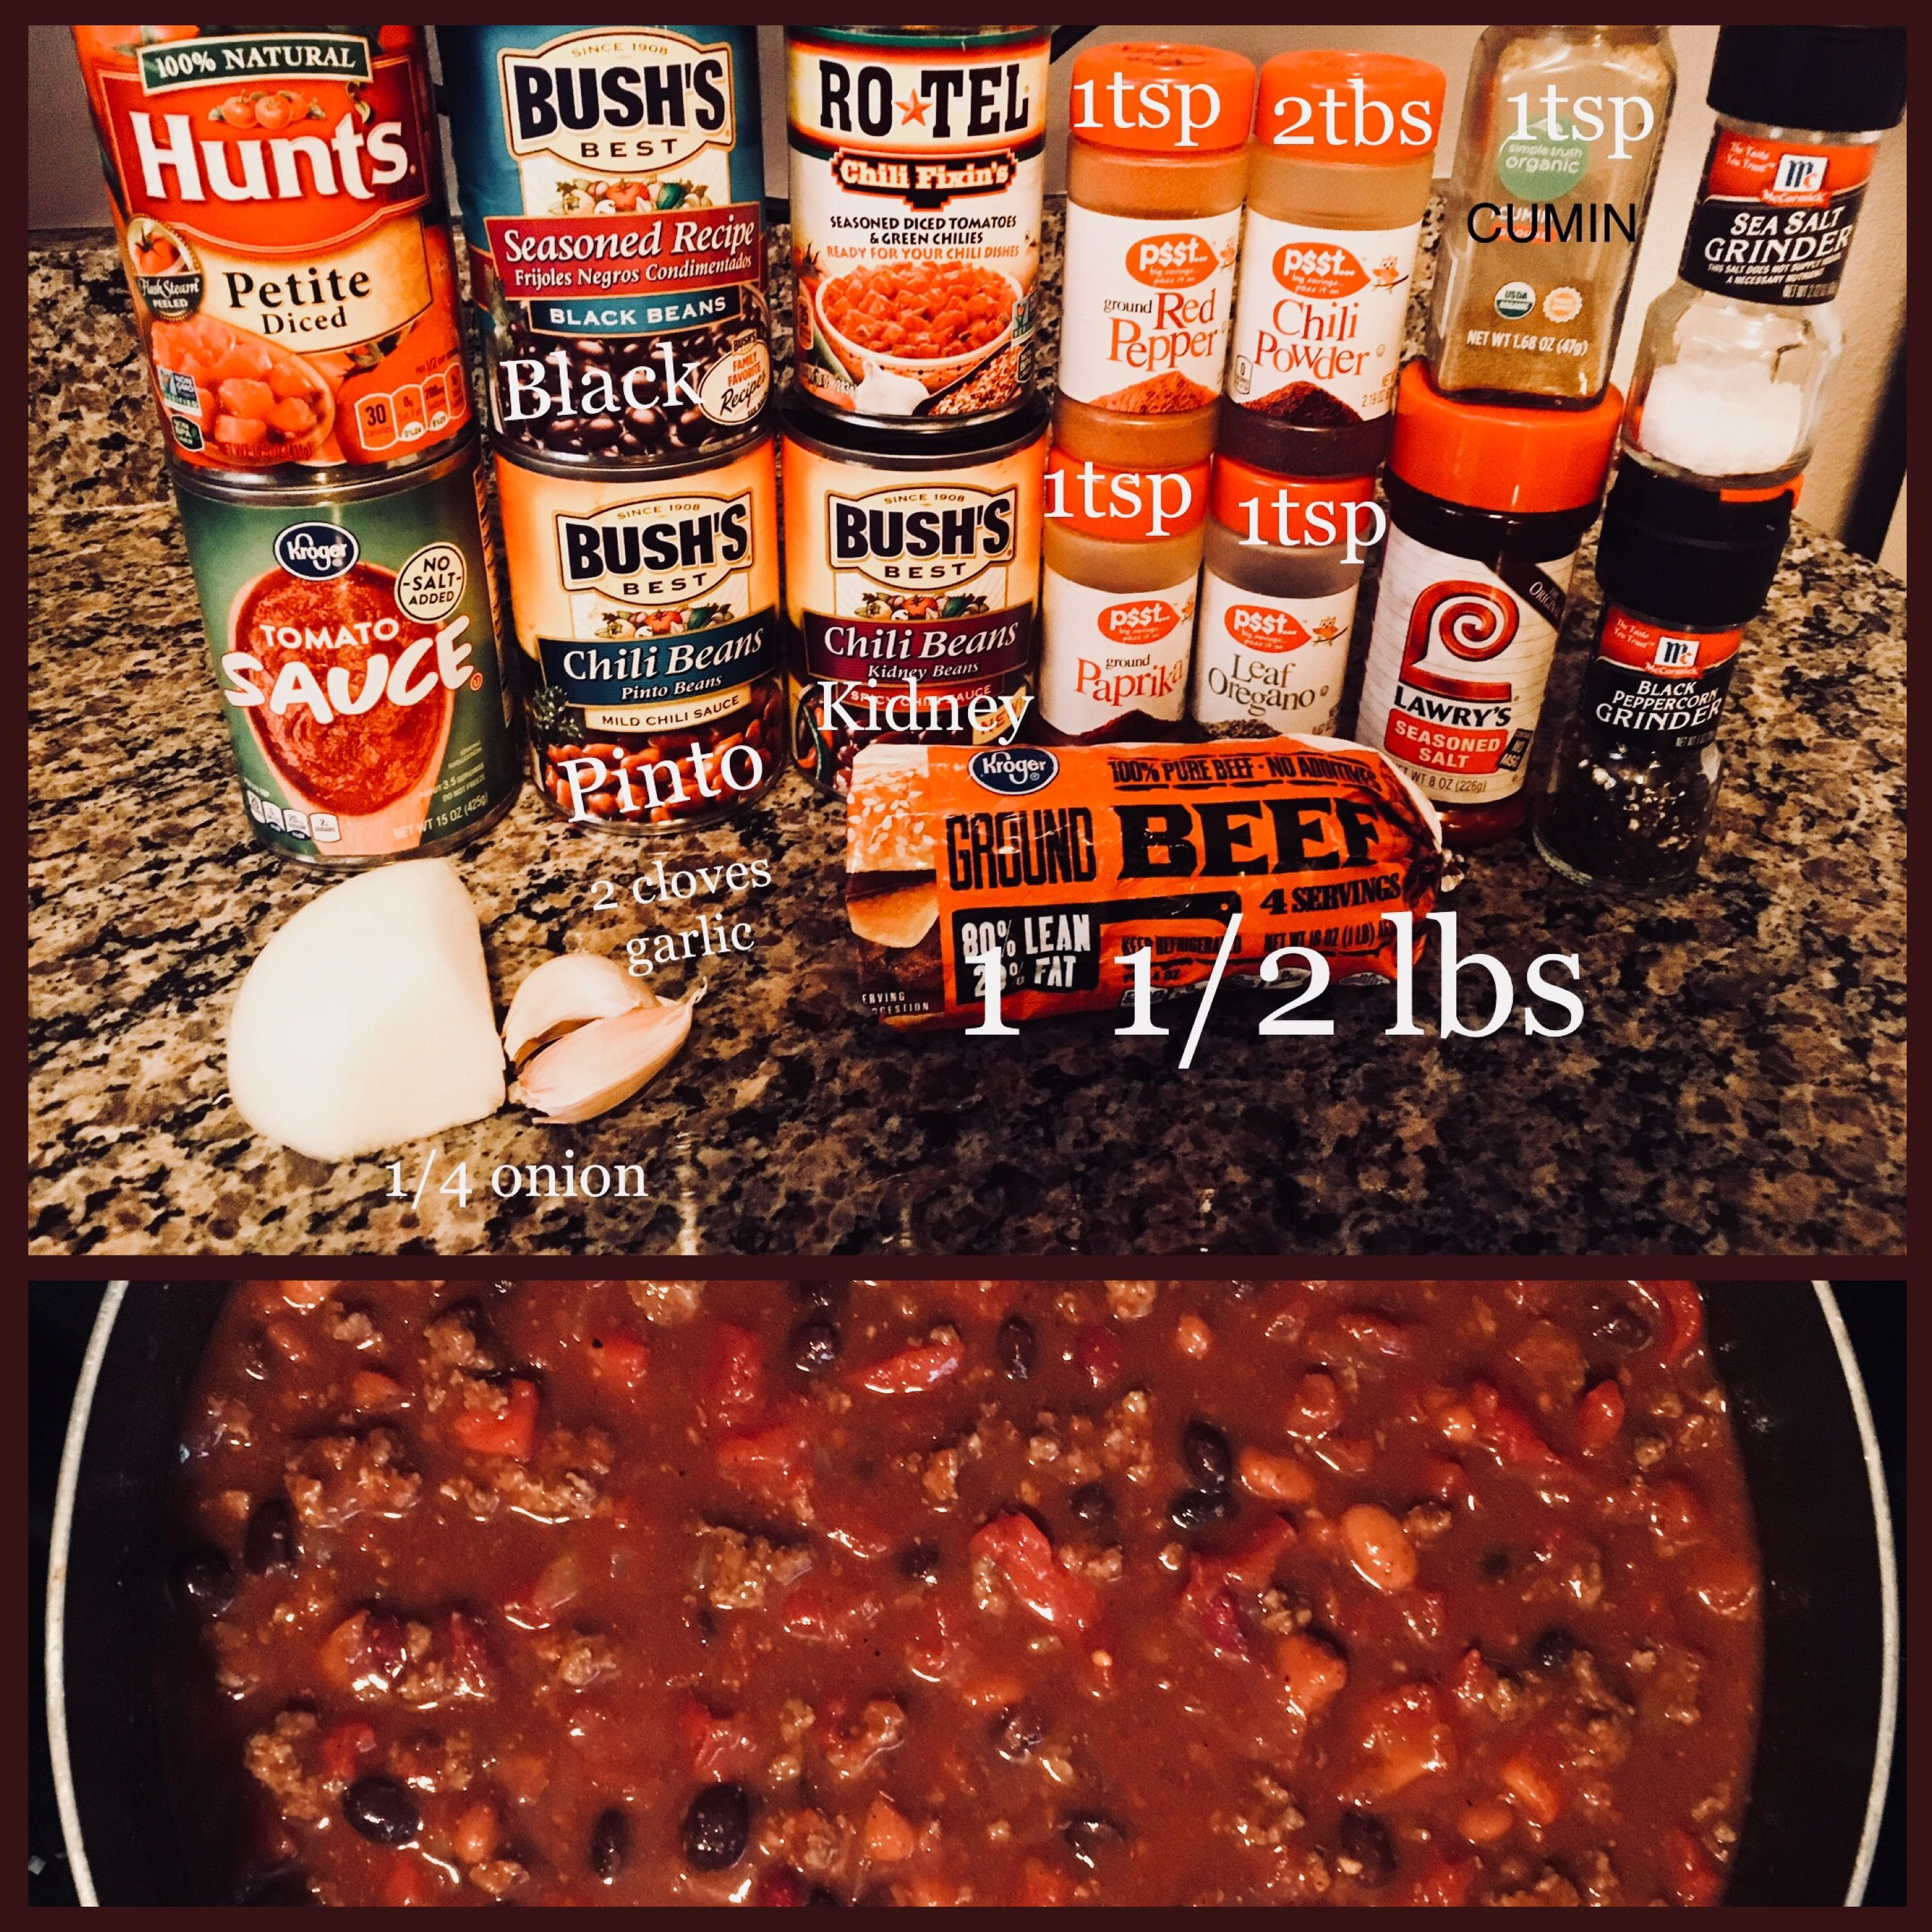 Homemade Chili Simple Ground Beef And Bean Hardy Chili Recipe Easy Crock Pot Stovetop Sim Easy Homemade Chili Chili Recipe Easy Chilli Recipe Crockpot